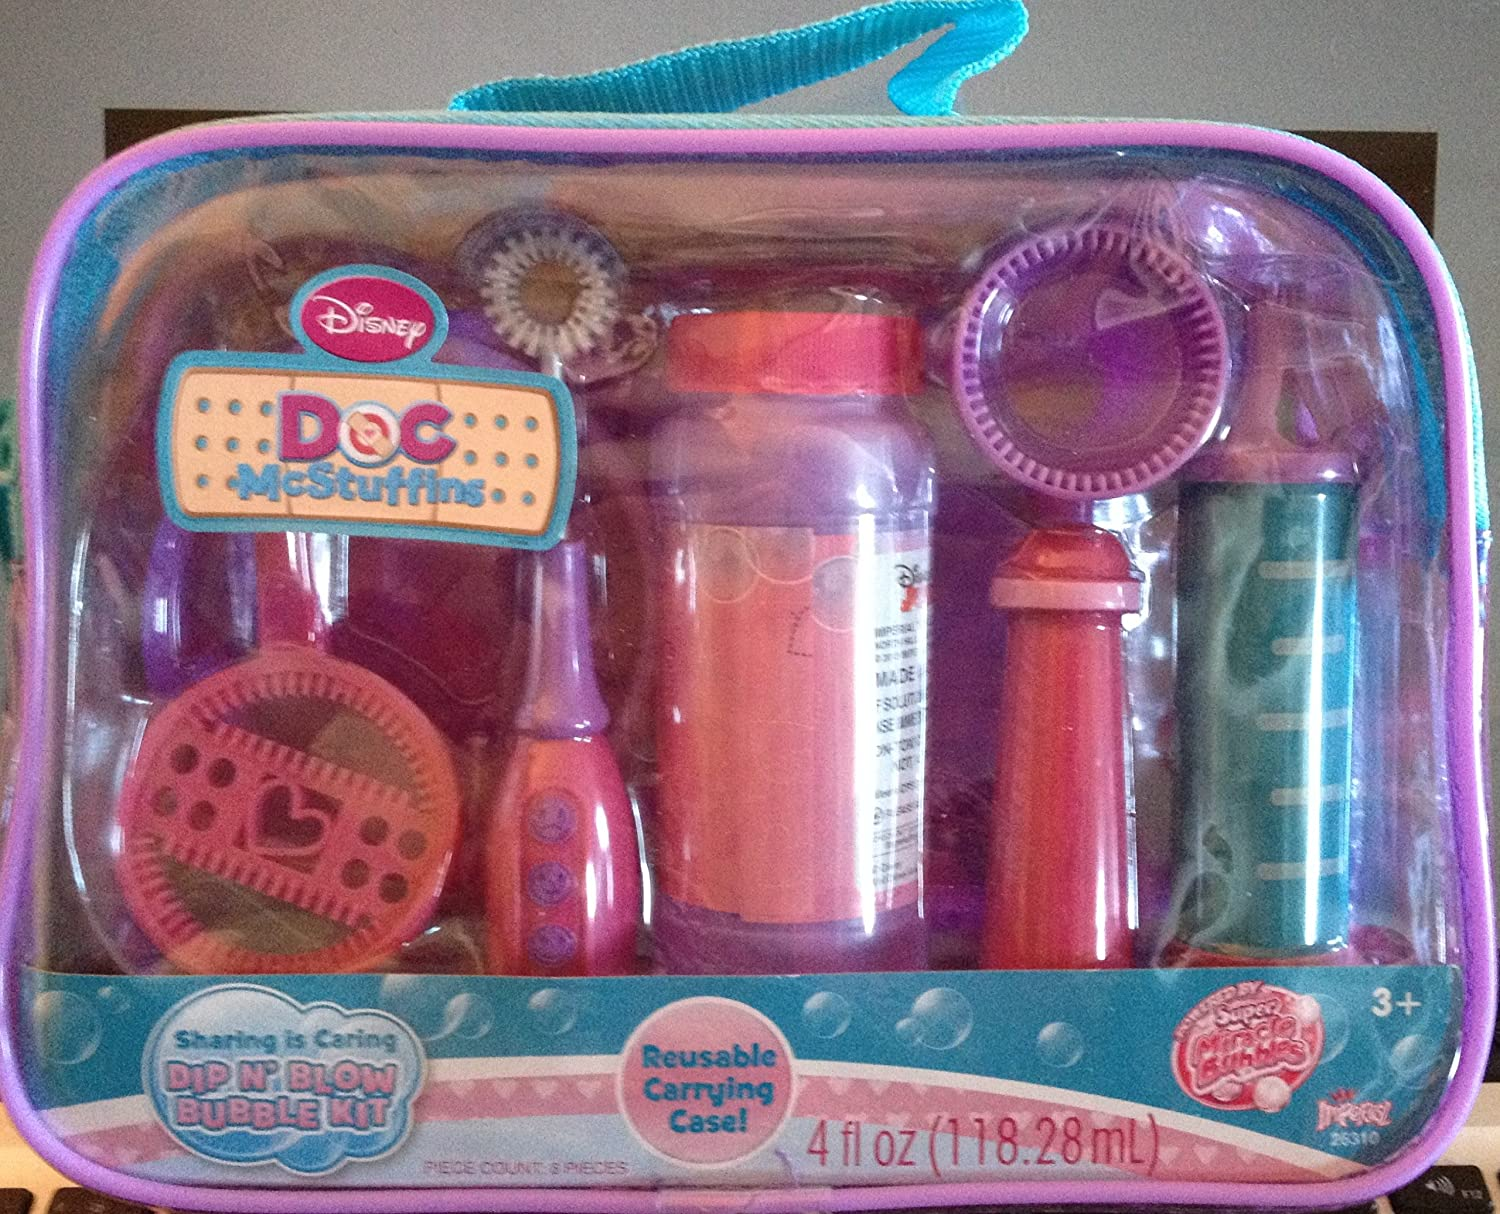 Doc McStuffins Dip N' Blow Bubble Kit